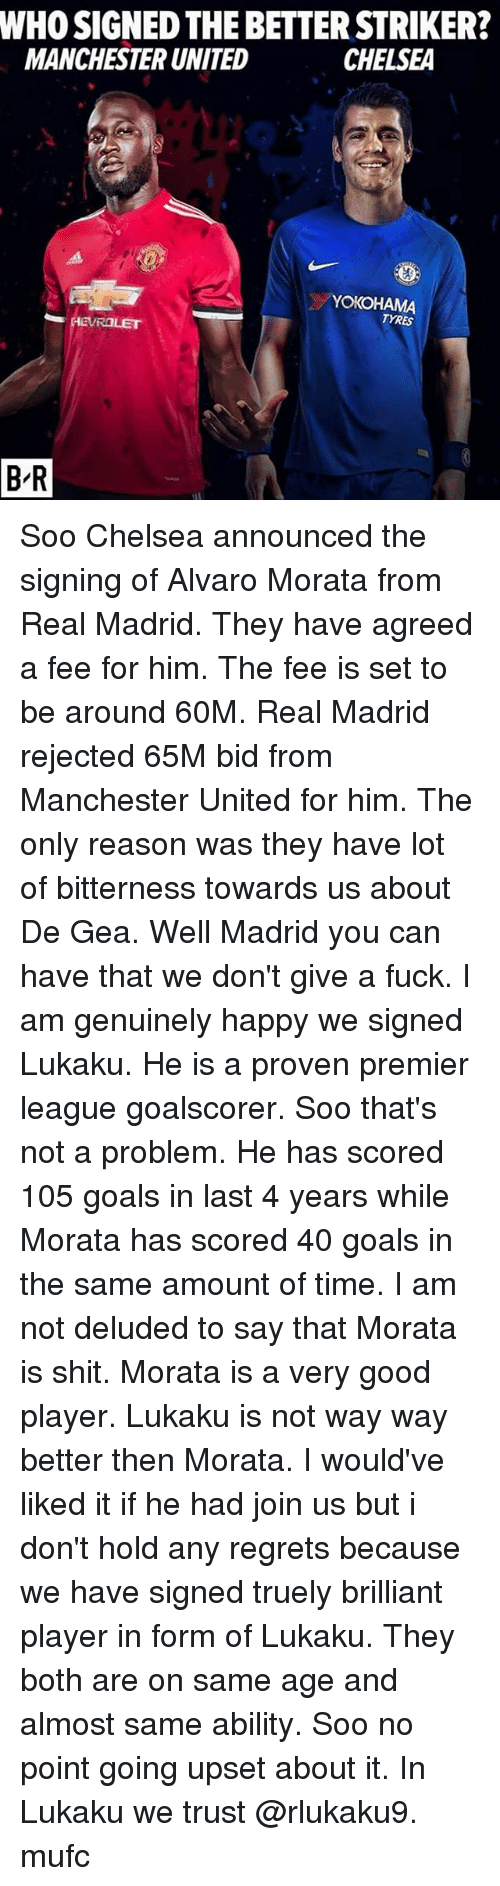 Upsetted: WHO SIGNED THE BETTER STRIKER?  MANCHESTER UNITED  CHELSEA  YOKOHAMA  TYRES  B-R Soo Chelsea announced the signing of Alvaro Morata from Real Madrid. They have agreed a fee for him. The fee is set to be around 60M. Real Madrid rejected 65M bid from Manchester United for him. The only reason was they have lot of bitterness towards us about De Gea. Well Madrid you can have that we don't give a fuck. I am genuinely happy we signed Lukaku. He is a proven premier league goalscorer. Soo that's not a problem. He has scored 105 goals in last 4 years while Morata has scored 40 goals in the same amount of time. I am not deluded to say that Morata is shit. Morata is a very good player. Lukaku is not way way better then Morata. I would've liked it if he had join us but i don't hold any regrets because we have signed truely brilliant player in form of Lukaku. They both are on same age and almost same ability. Soo no point going upset about it. In Lukaku we trust @rlukaku9. mufc